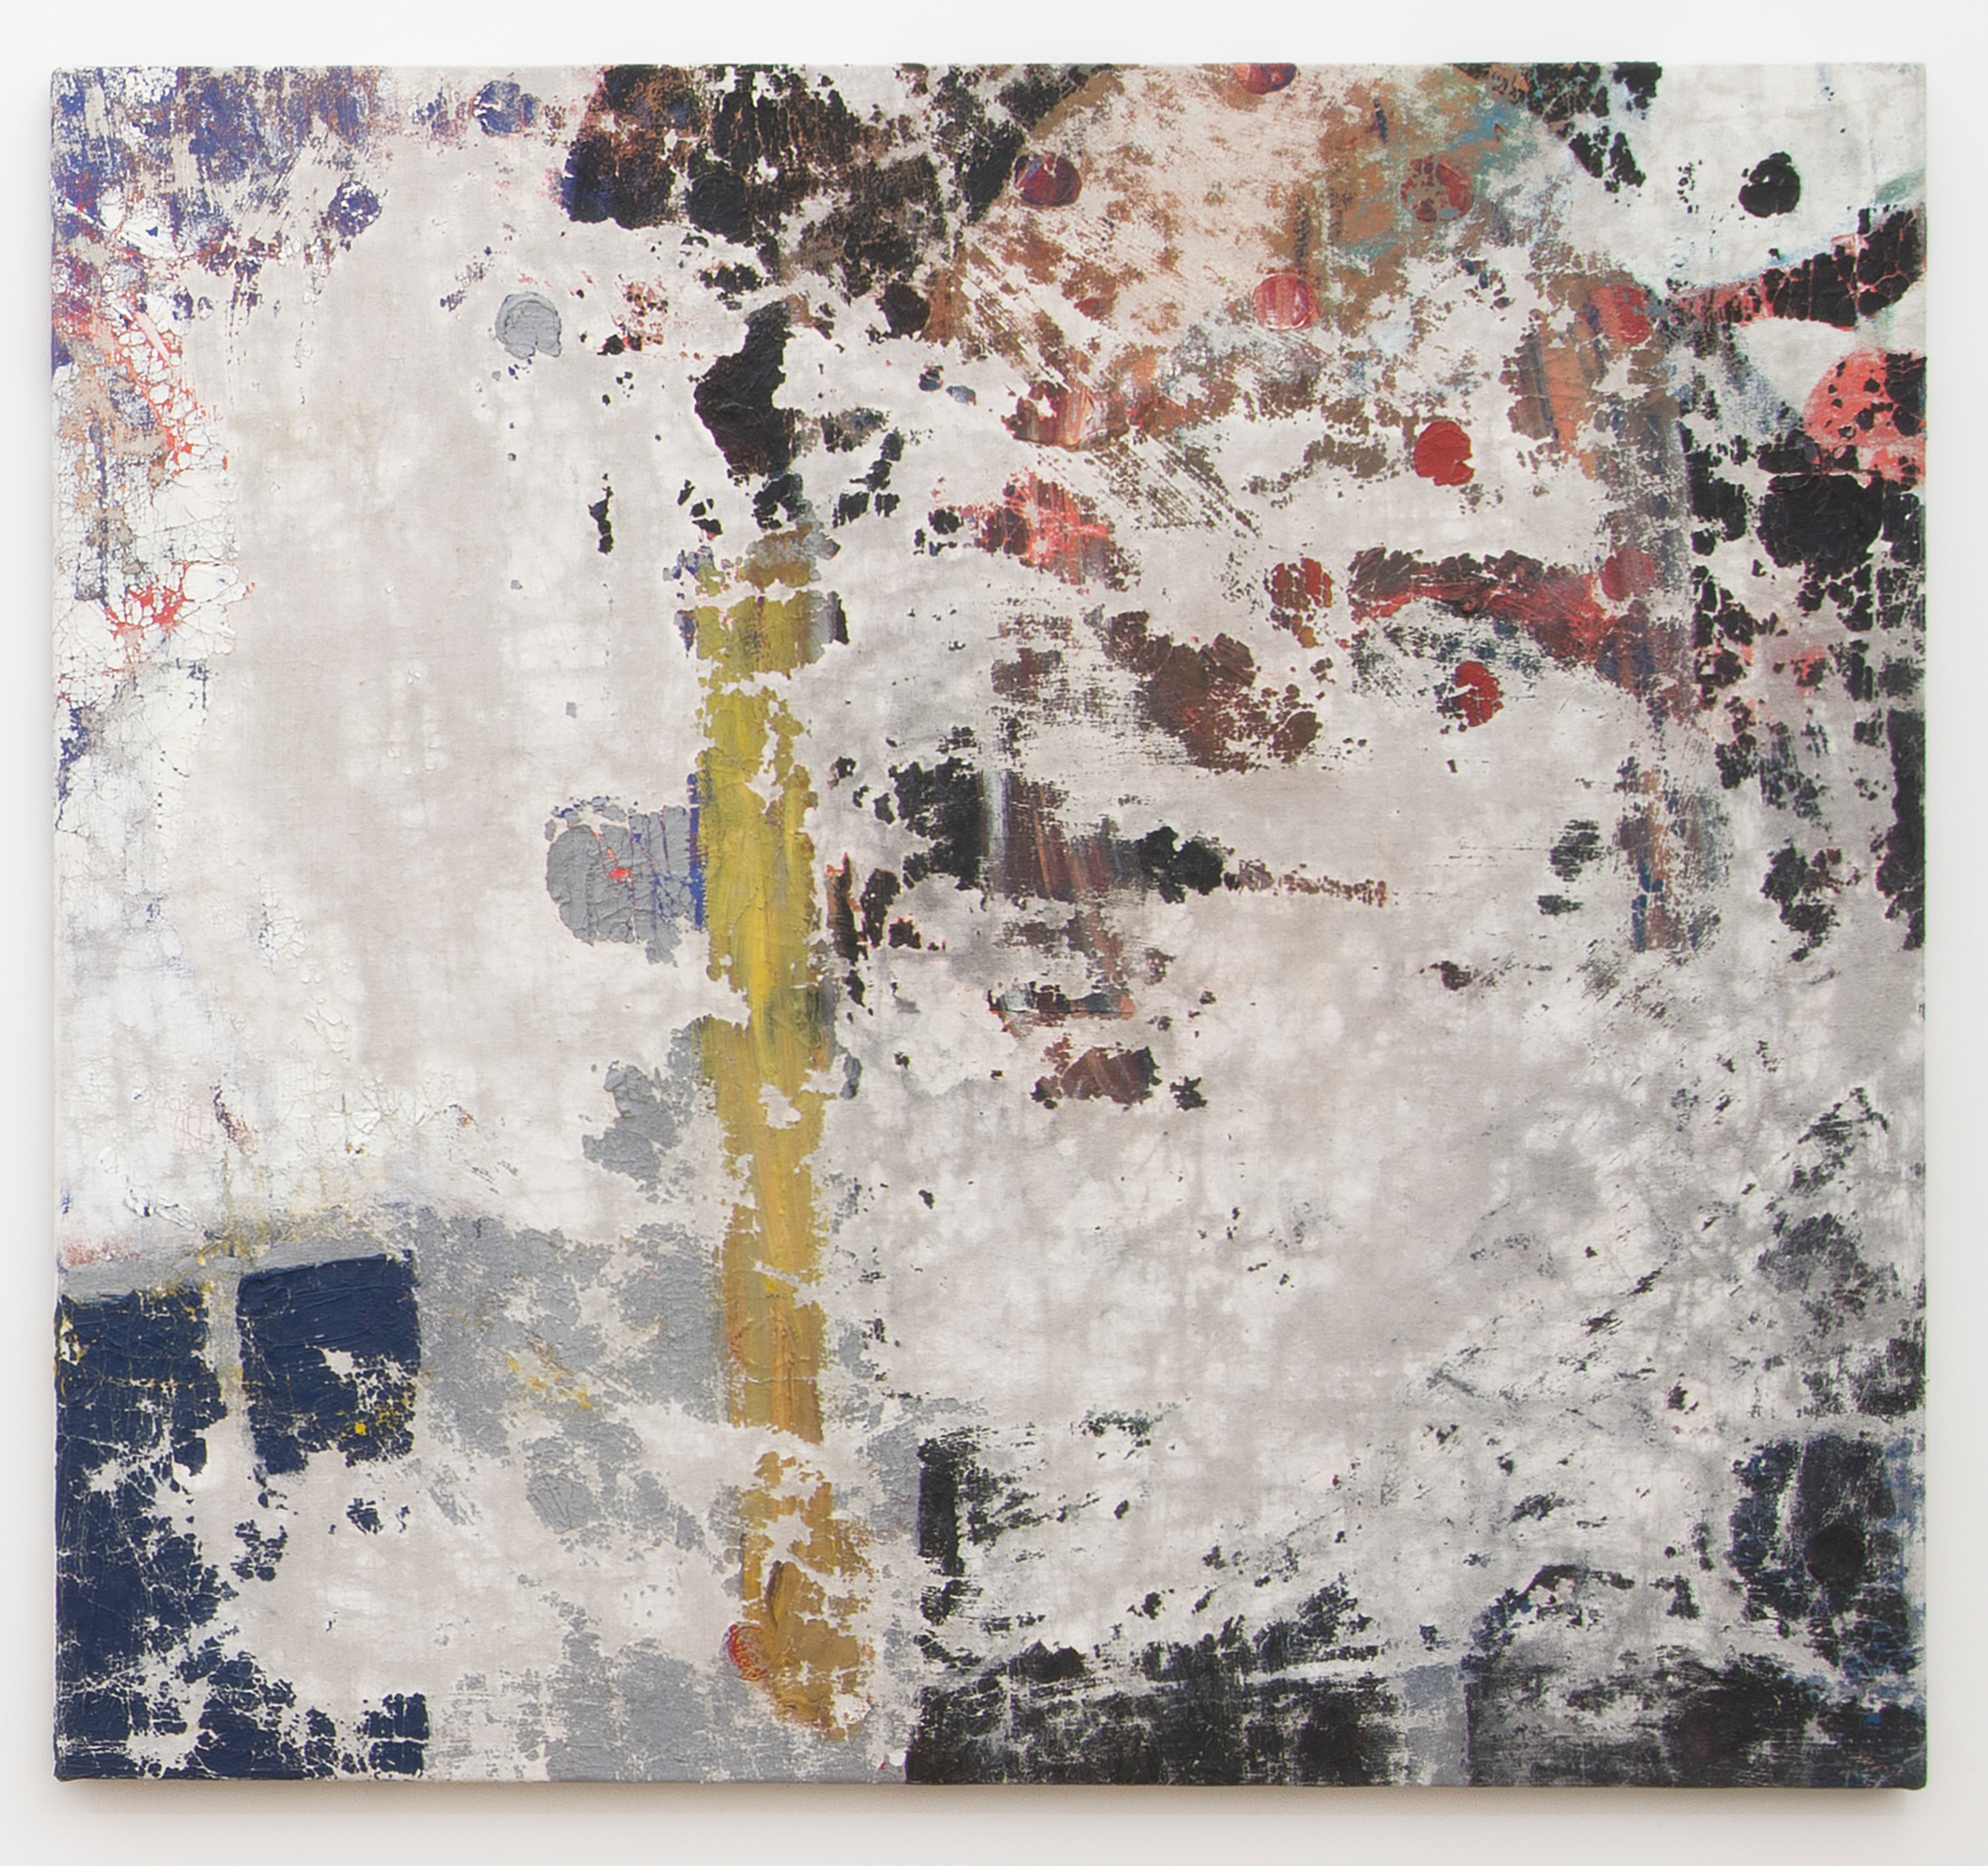 Ajemian, Laundered Painting (44x41) I, 2014, painting on canvas, 44 x 41 in. 111.76 x 104.14 cm,2 photo by Bill Orcutt.png